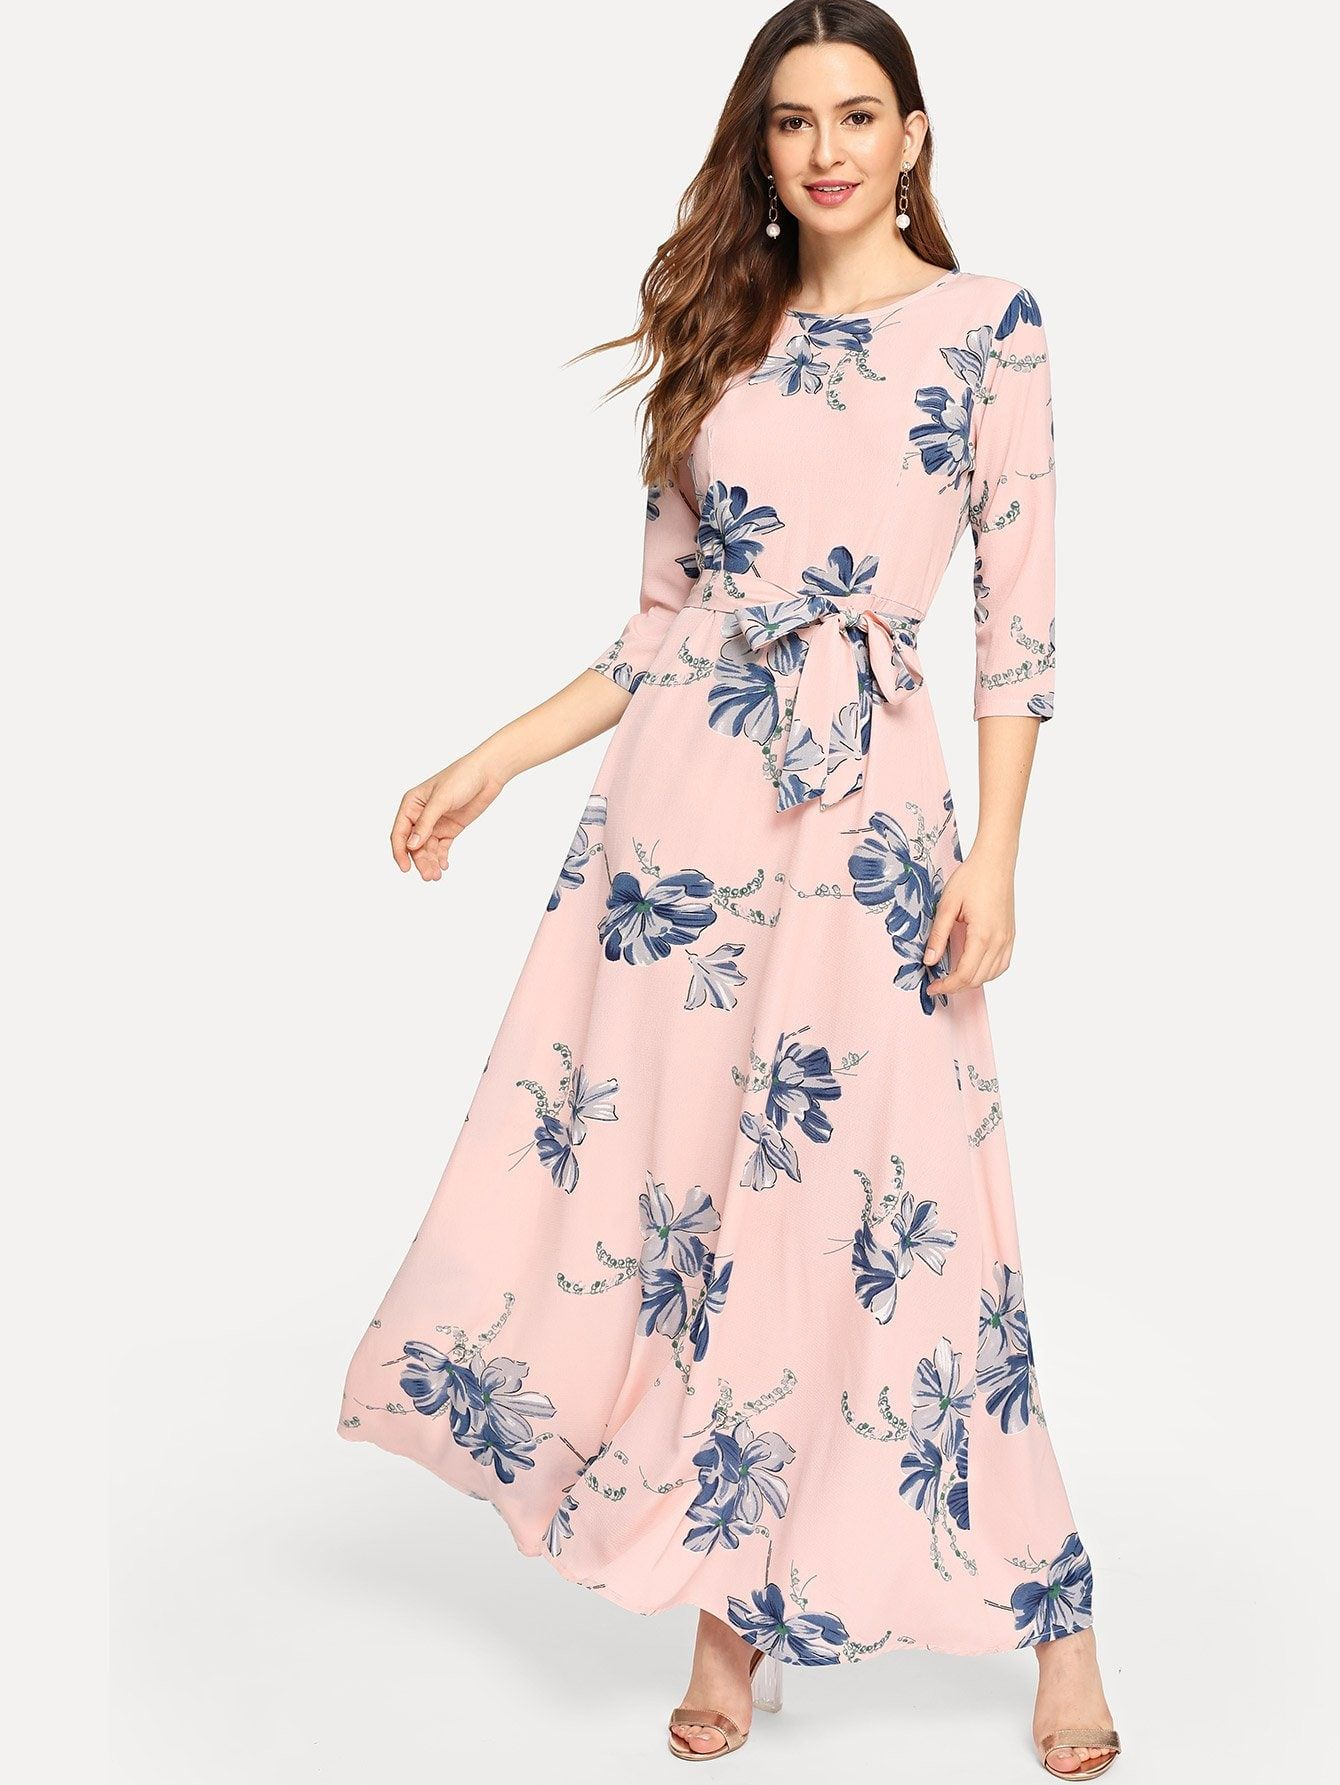 9d619a9130 Women Modest A Line Floral Sheath Trapeze Round Neck Three Quarter Length  Sleeve Natural Pink Maxi Length Floral Print Self Tie Maxi Dress with Belt